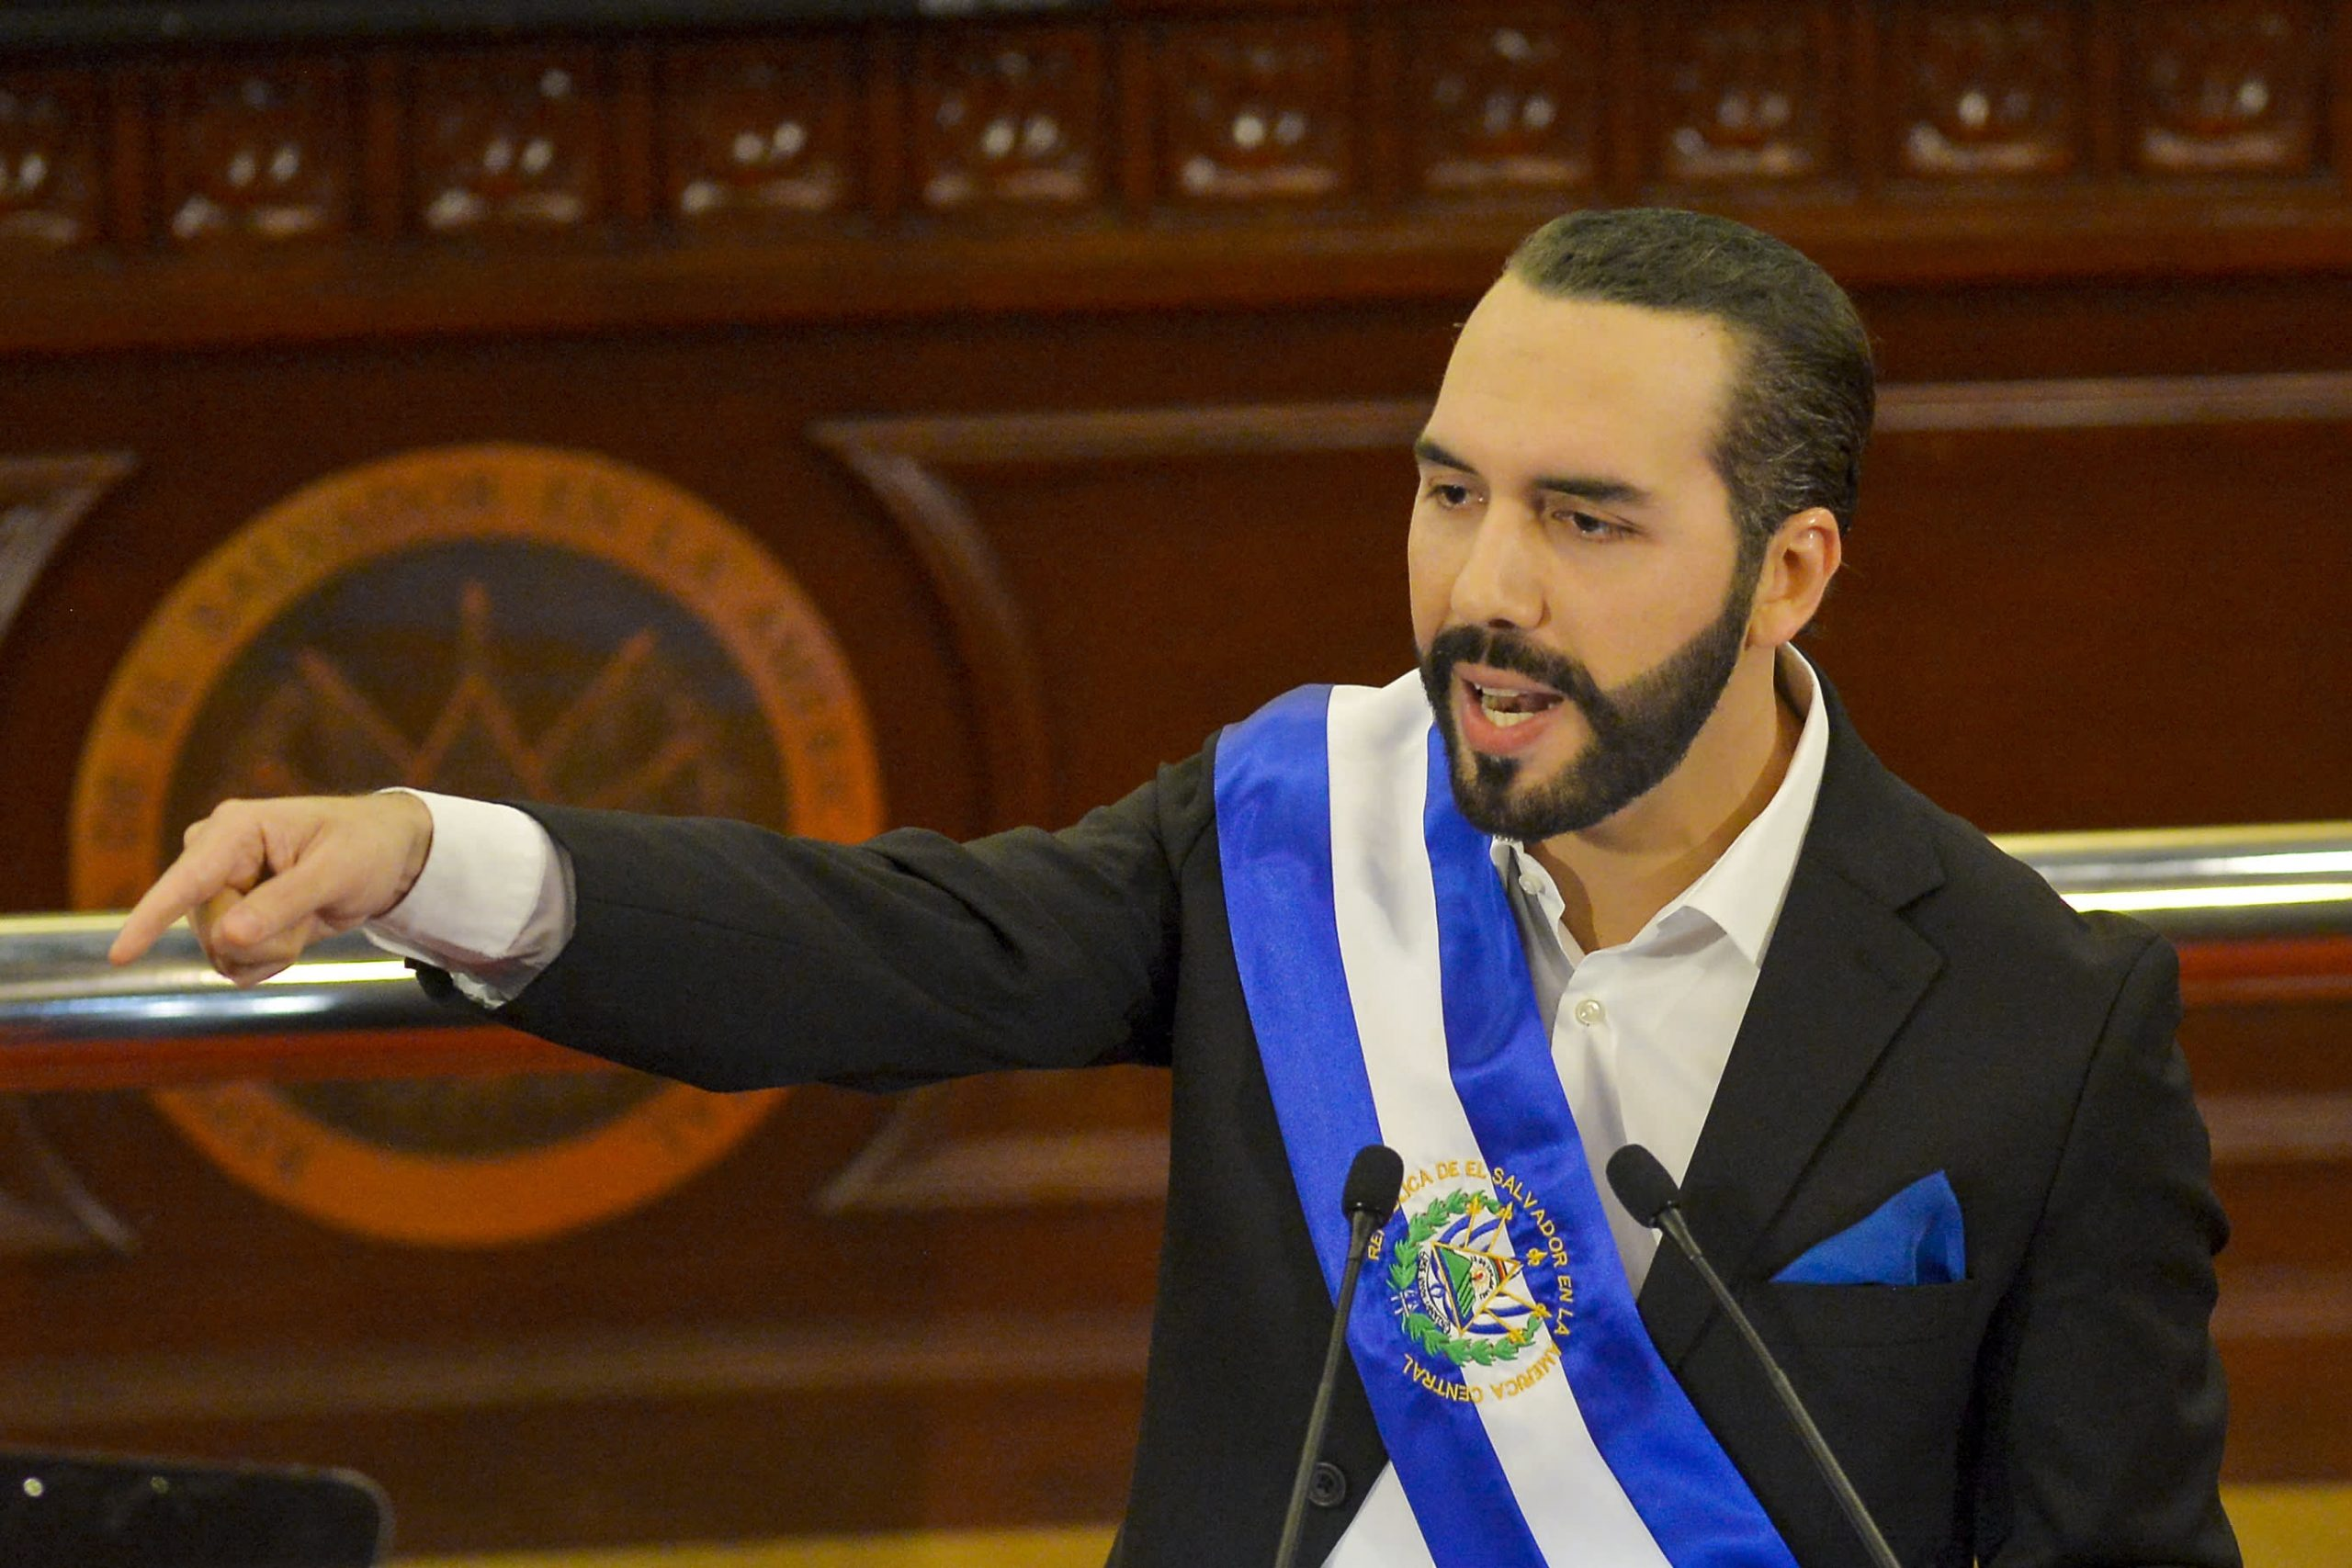 El Salvador hopes to becomes the world's first country to adopt bitcoin as legal tender